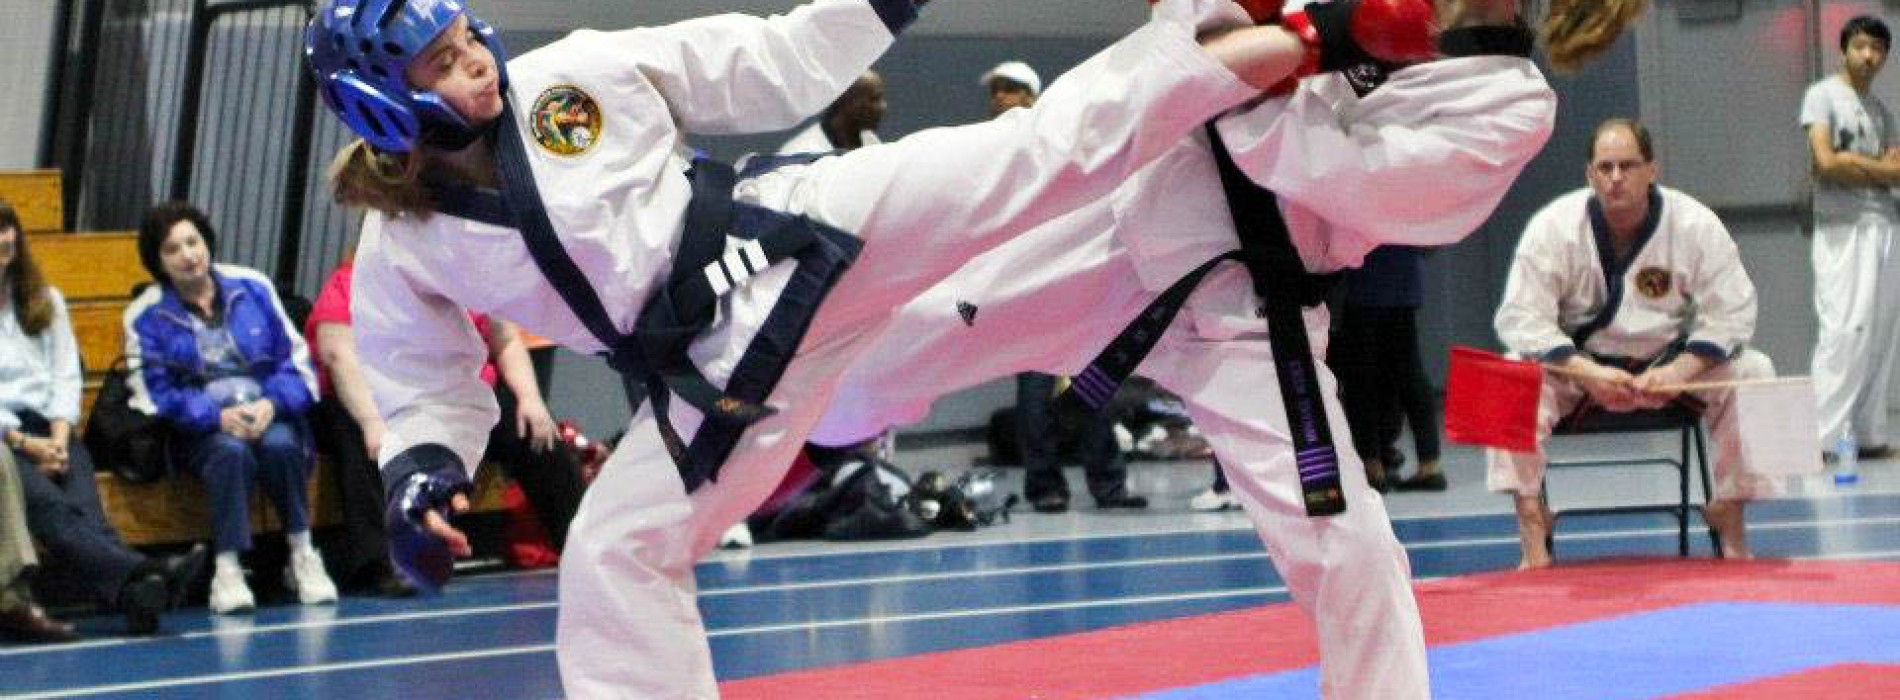 Karate Tournament Information